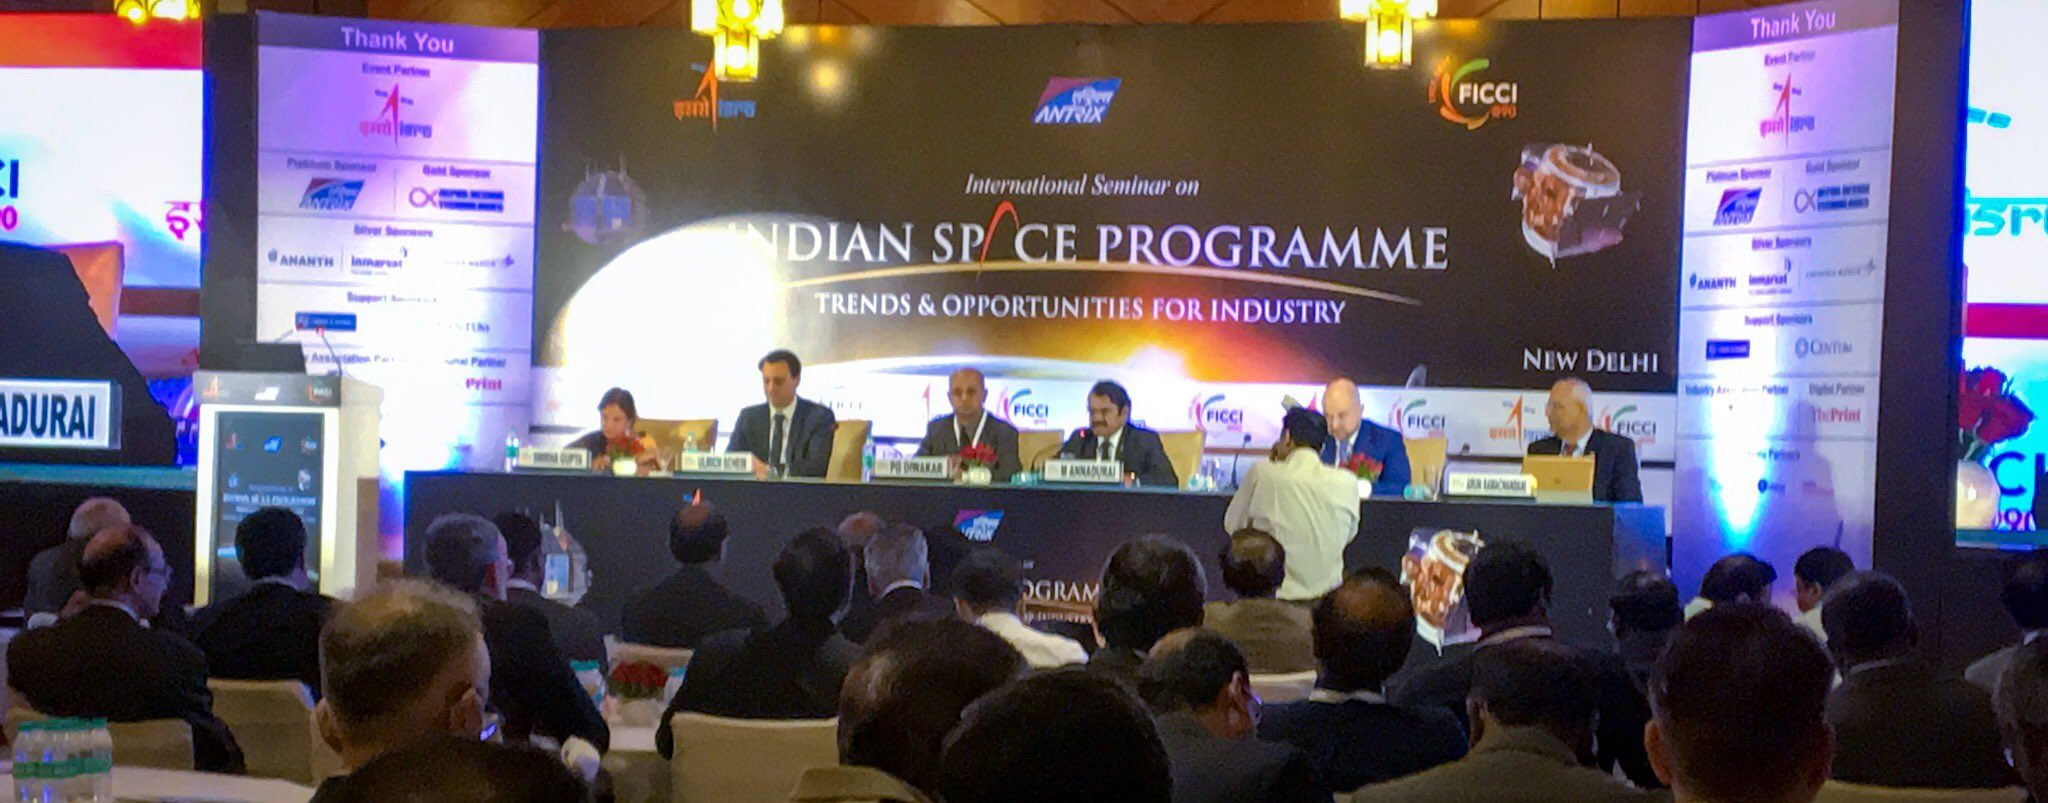 The international seminar on Indian Space Program inaugurated today at The Hotel Ashok, New Delhi